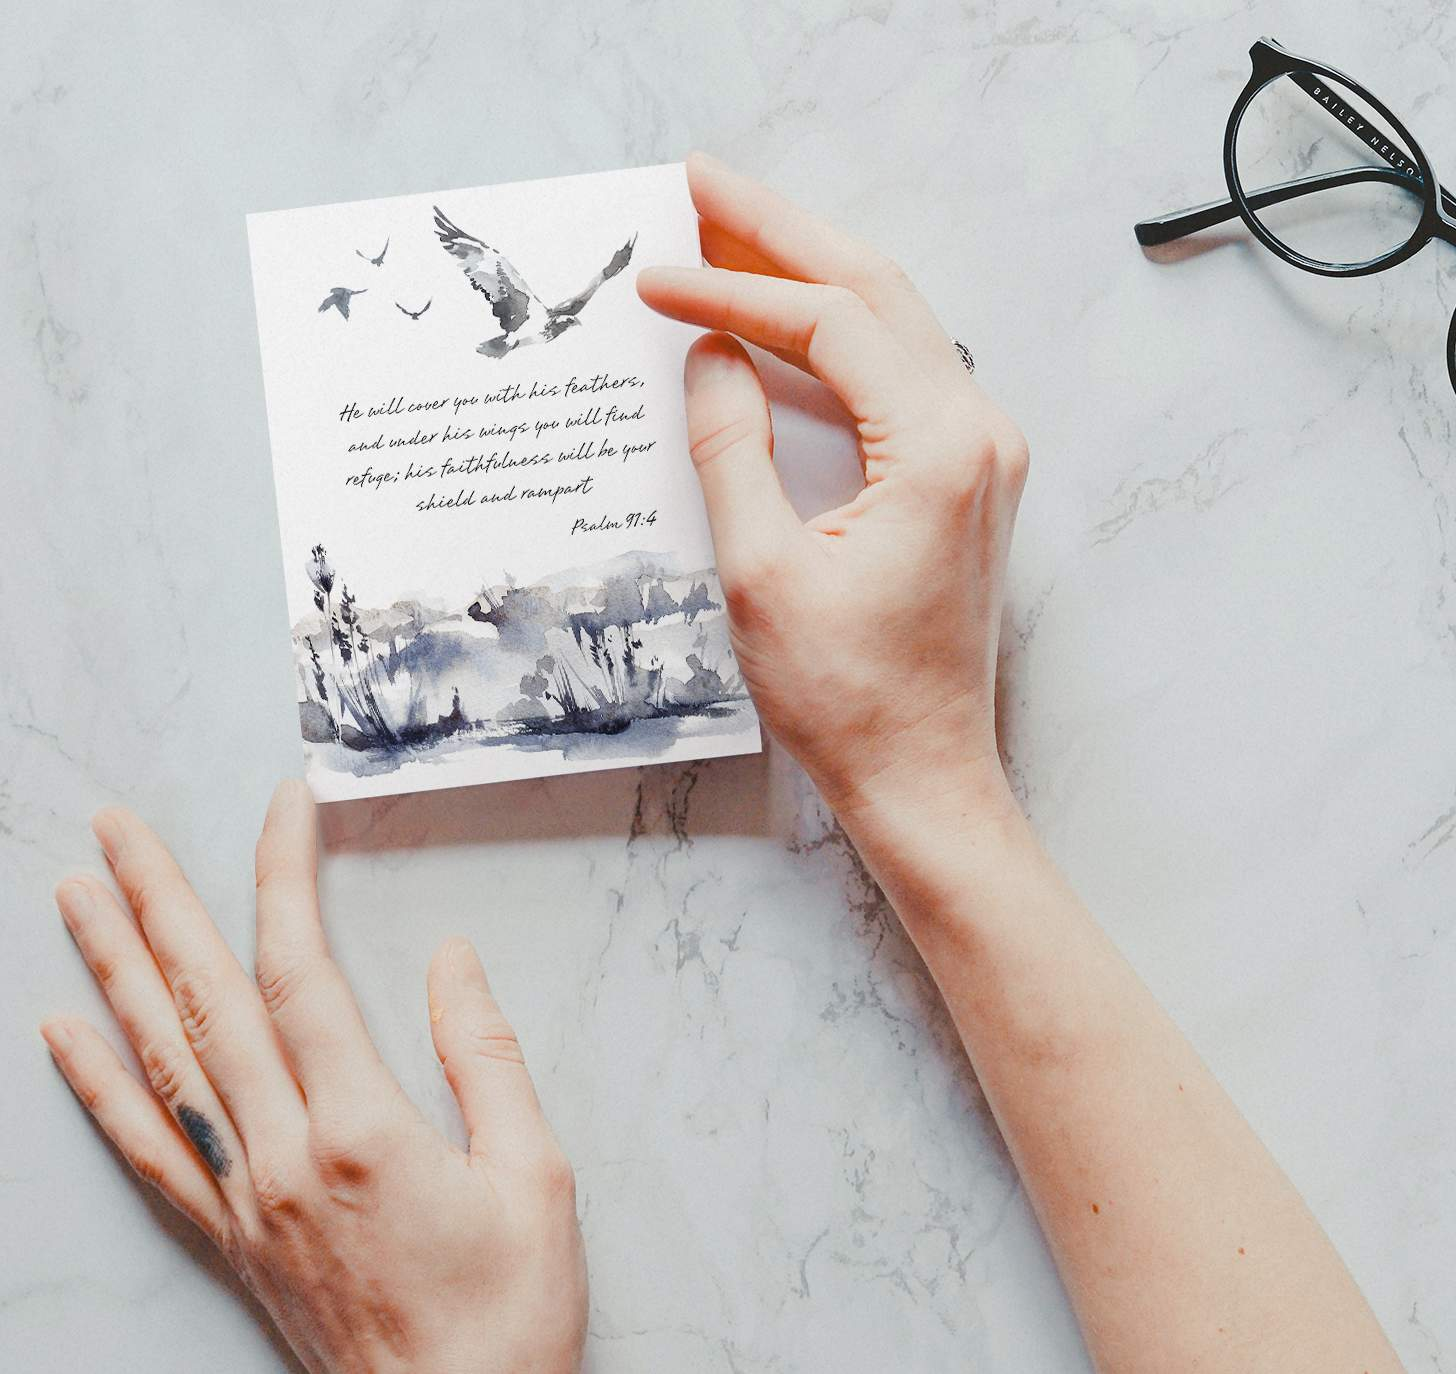 Hands holding Gray bird themed sympathy design on marble background